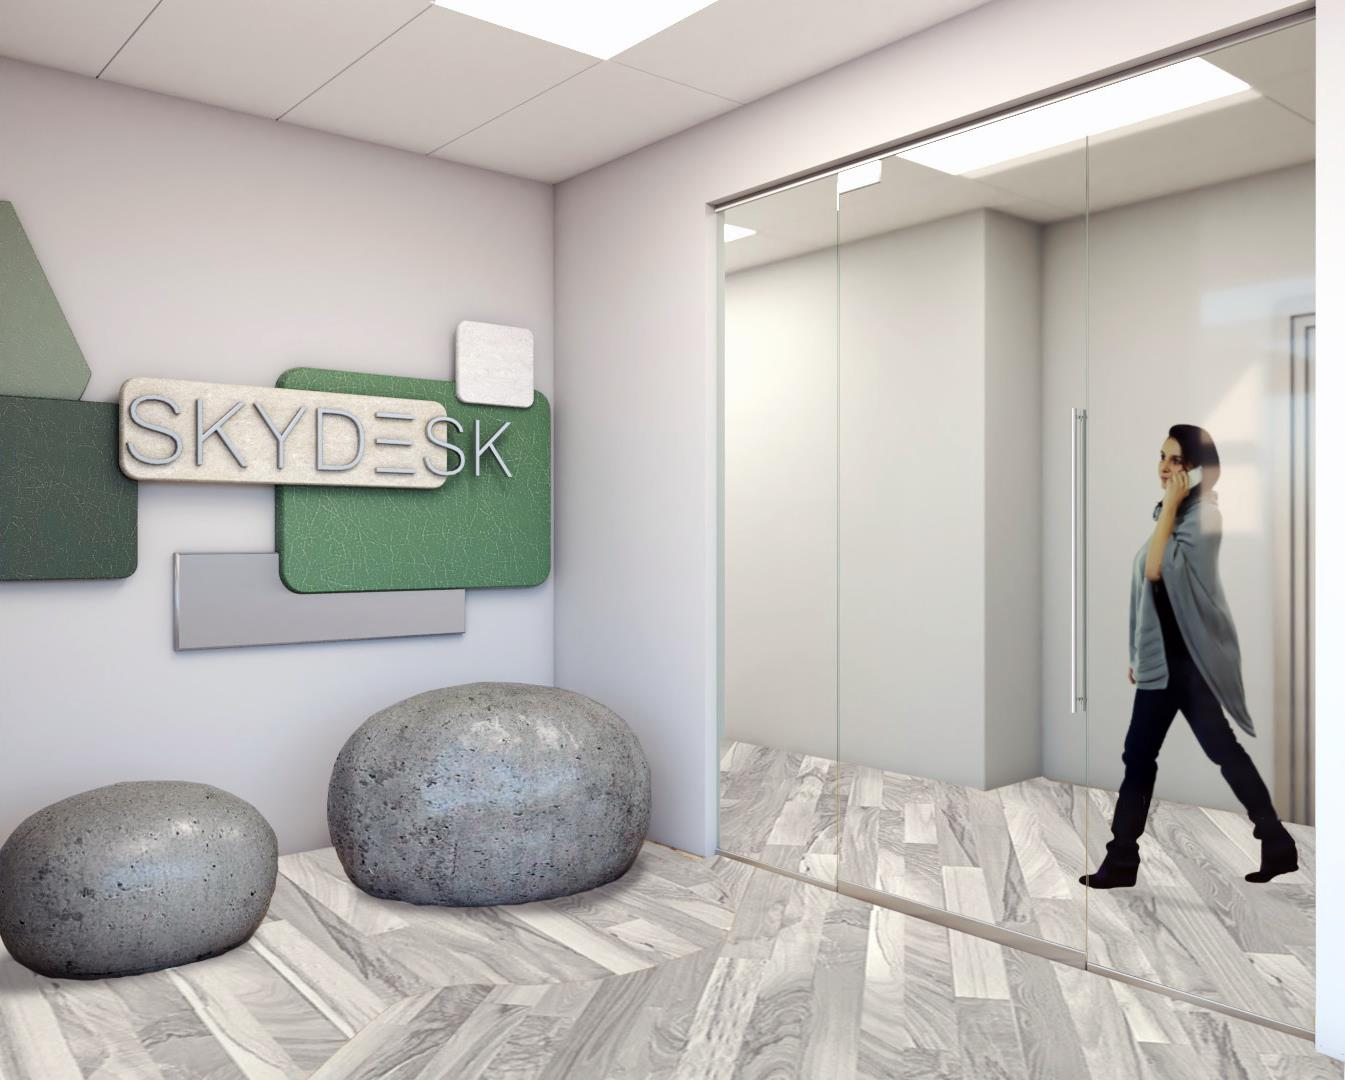 Sky Desk  - Morristown - Meeting/Conference Room